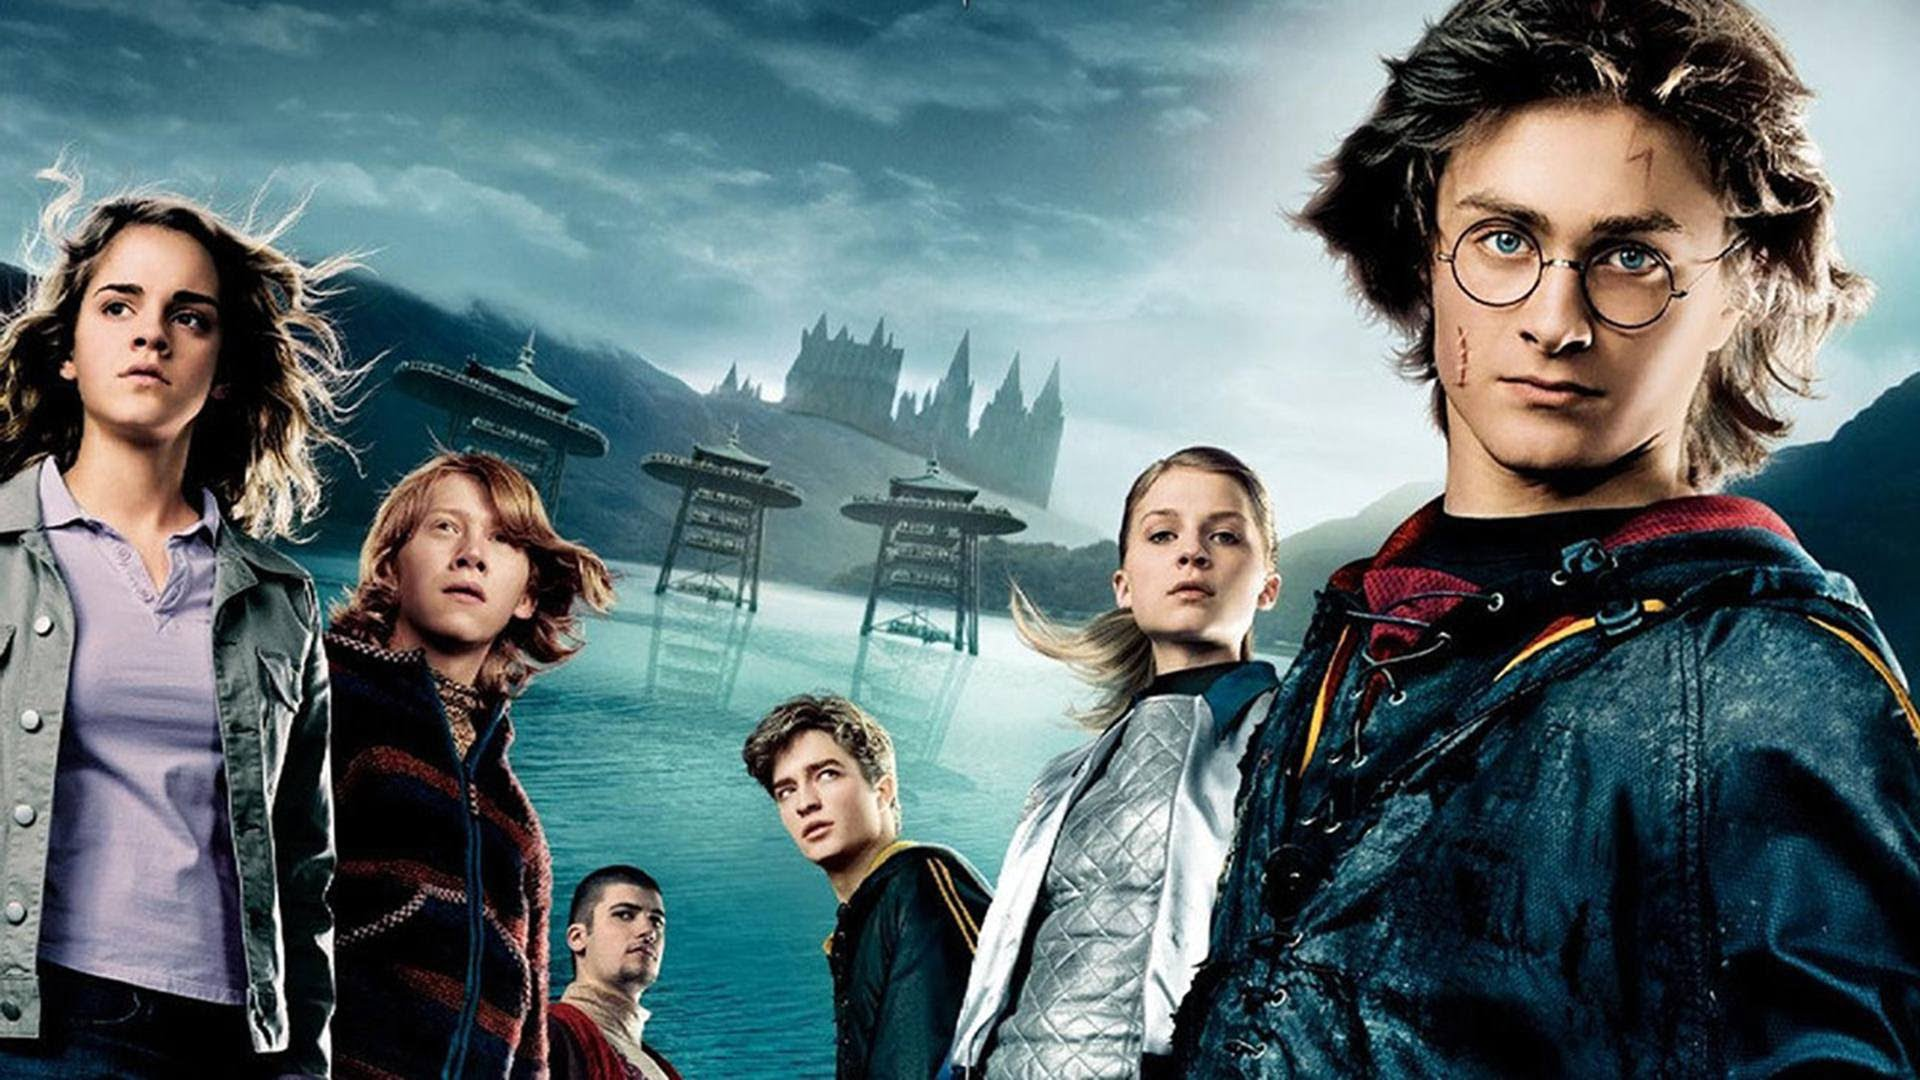 Harry Potter ve Ateş Kadehi Torrent 720p İndir